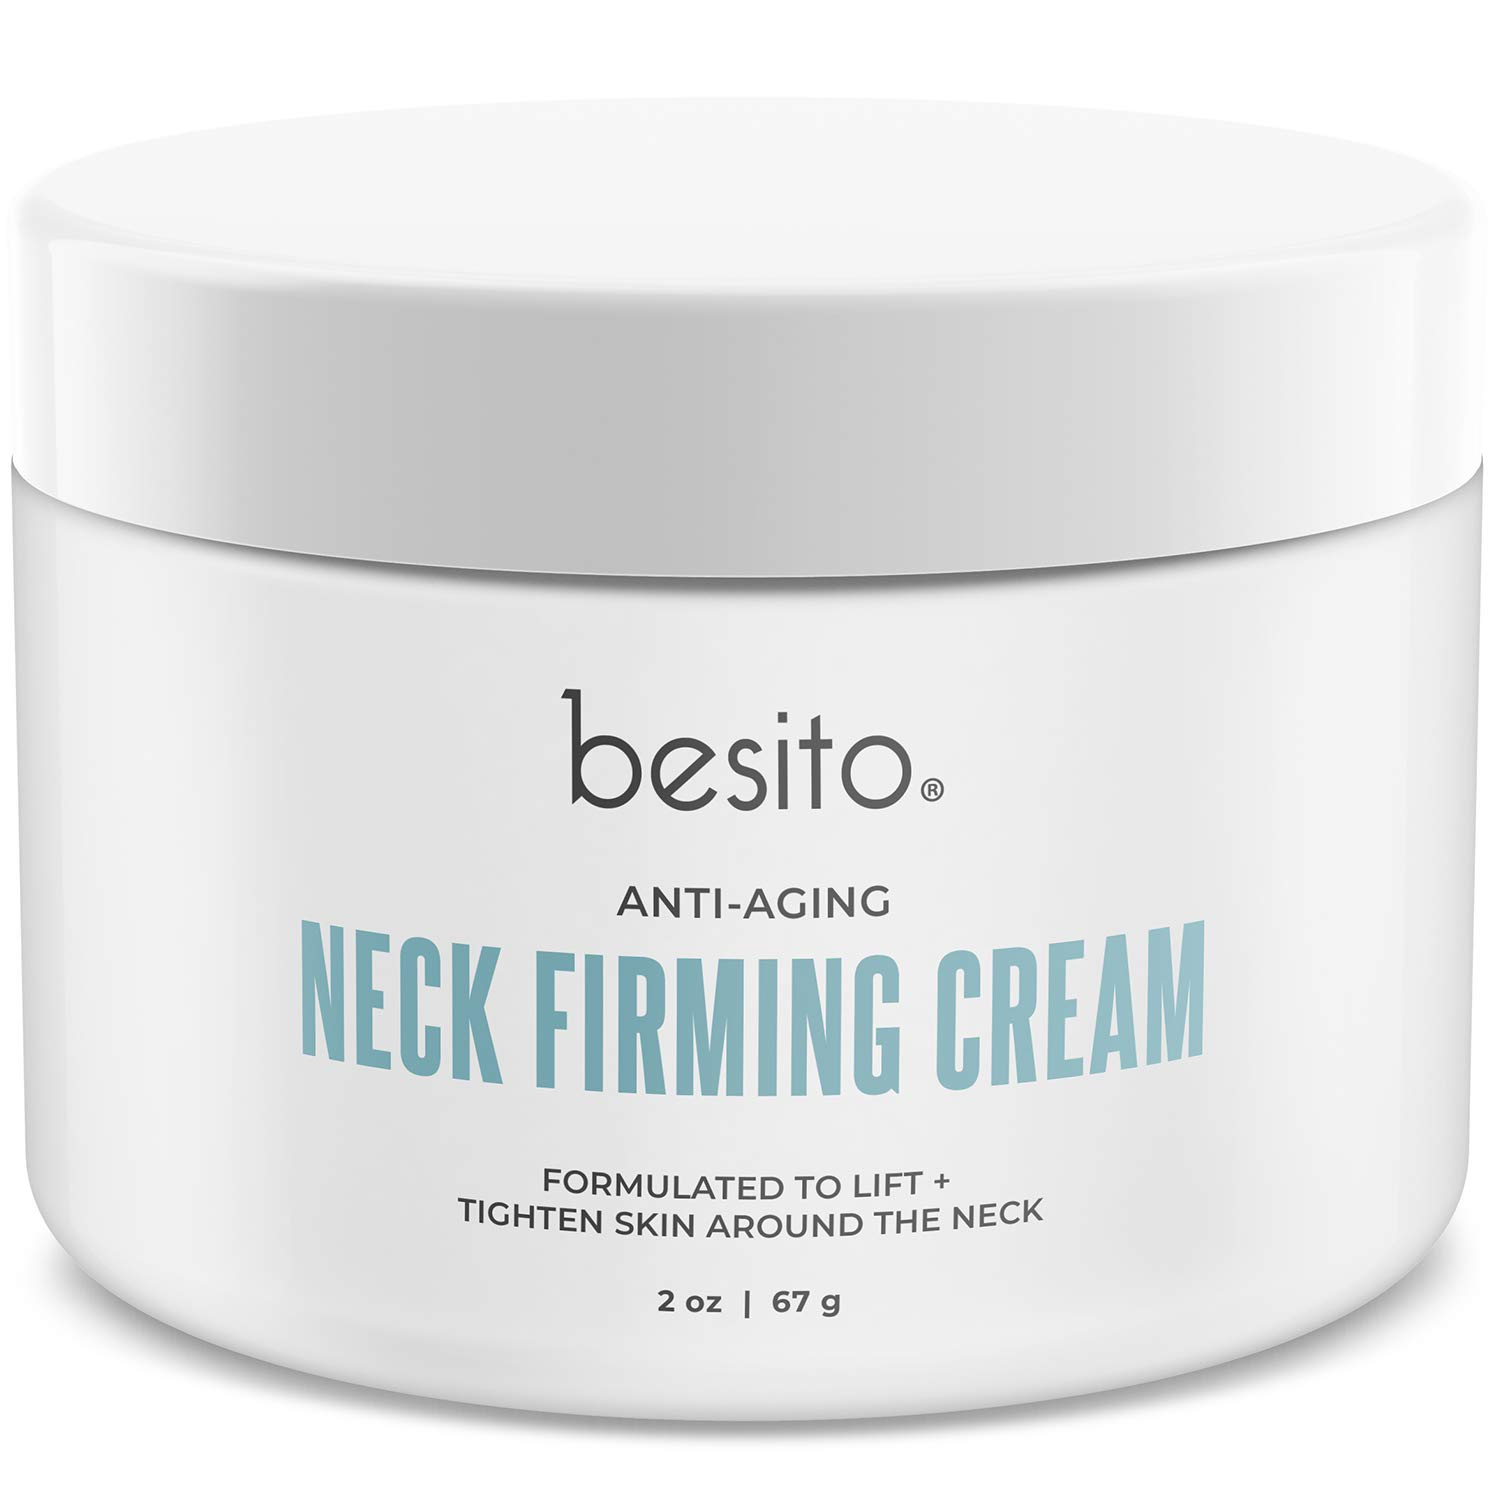 besito Advanced Neck Cream with Peptides, Vitamin E, Shea Butter, and More. Anti Aging Neck Firming Cream and Moisturizer Helps Reduce Wrinkles, Fine Lines and Age Spots. by BESITO